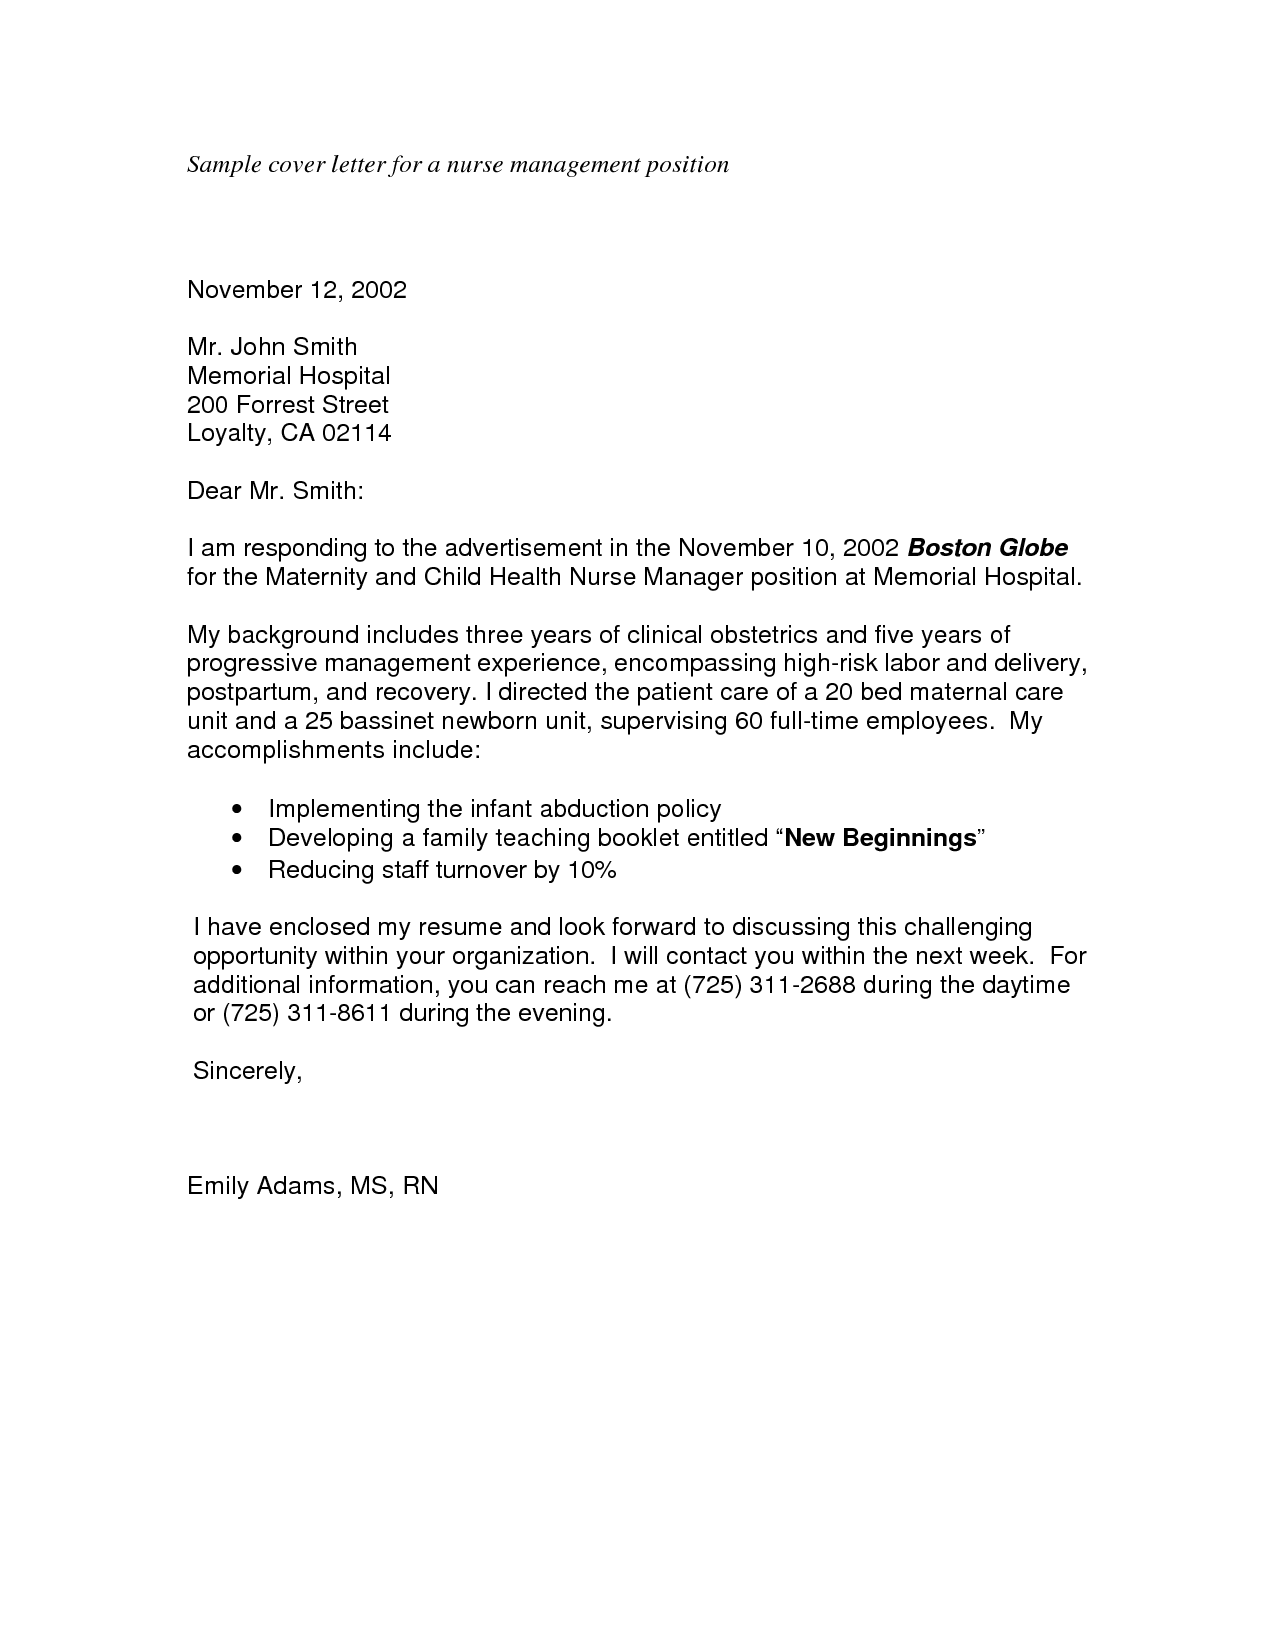 Blood Bank Technician Cover Letter | Aviation Technician Cover Letter